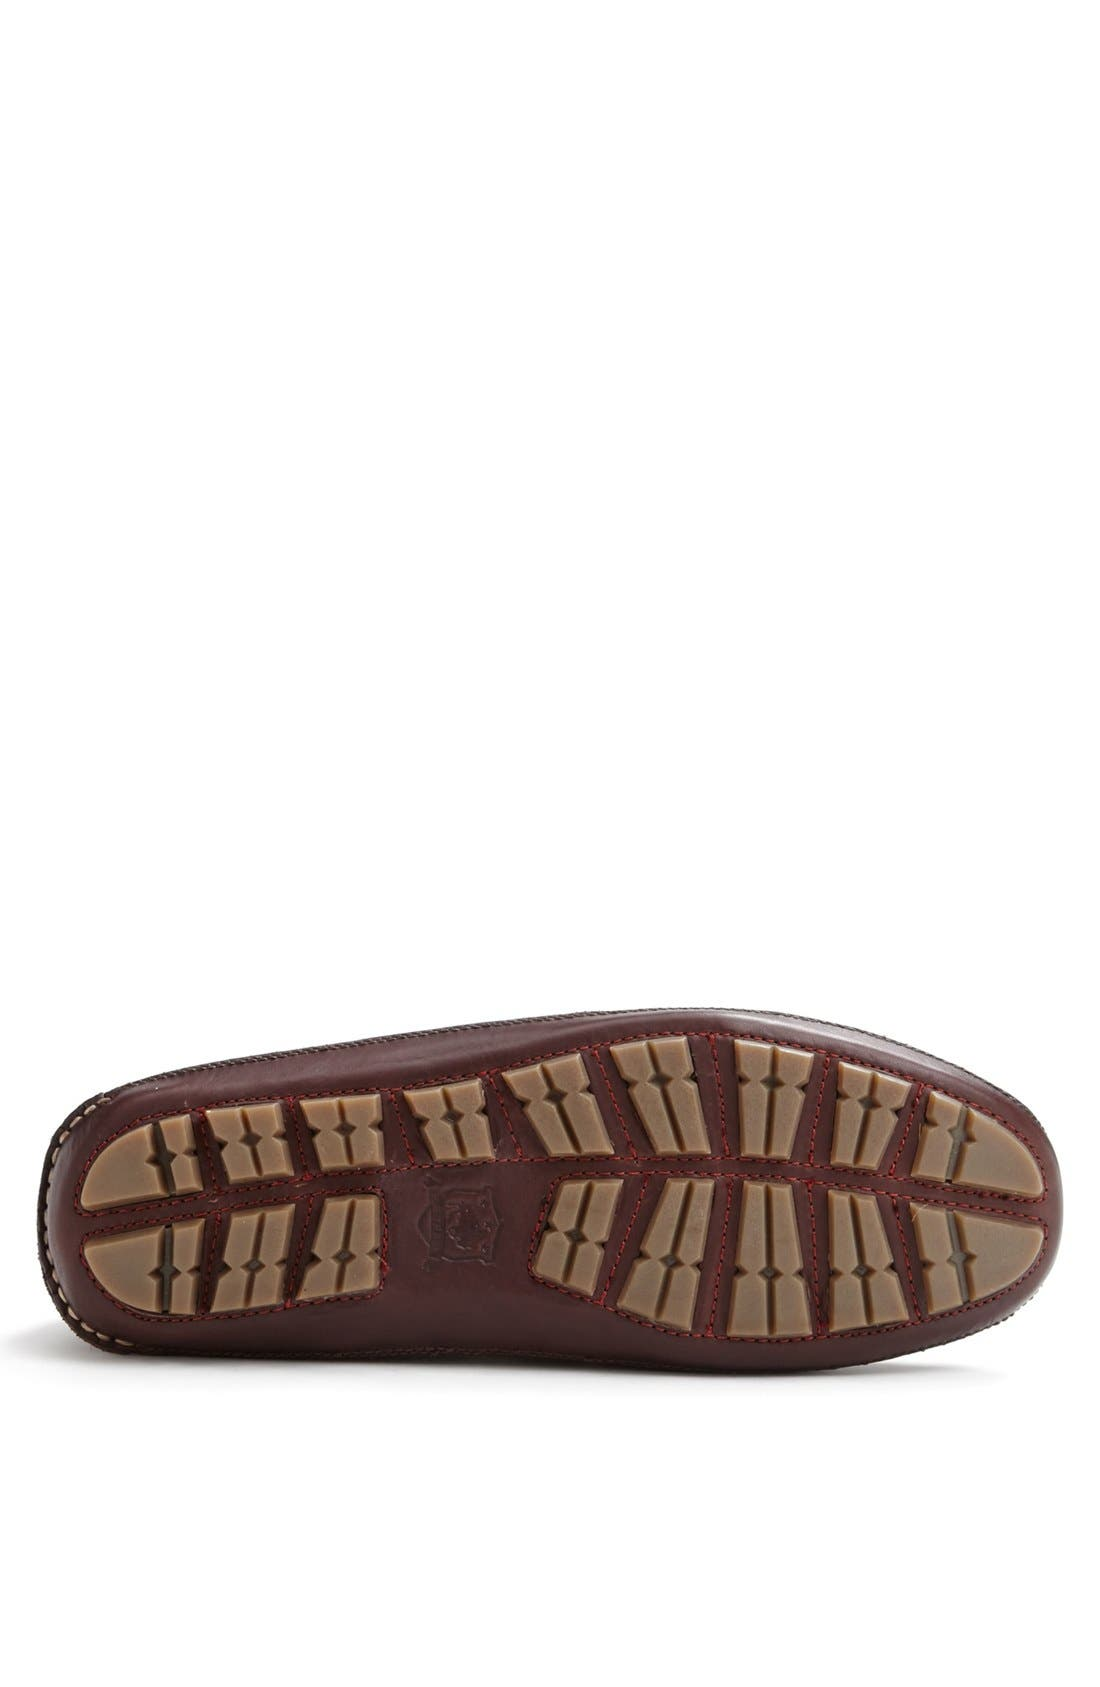 'Polson' Slipper,                             Alternate thumbnail 4, color,                             Bourbon Bison